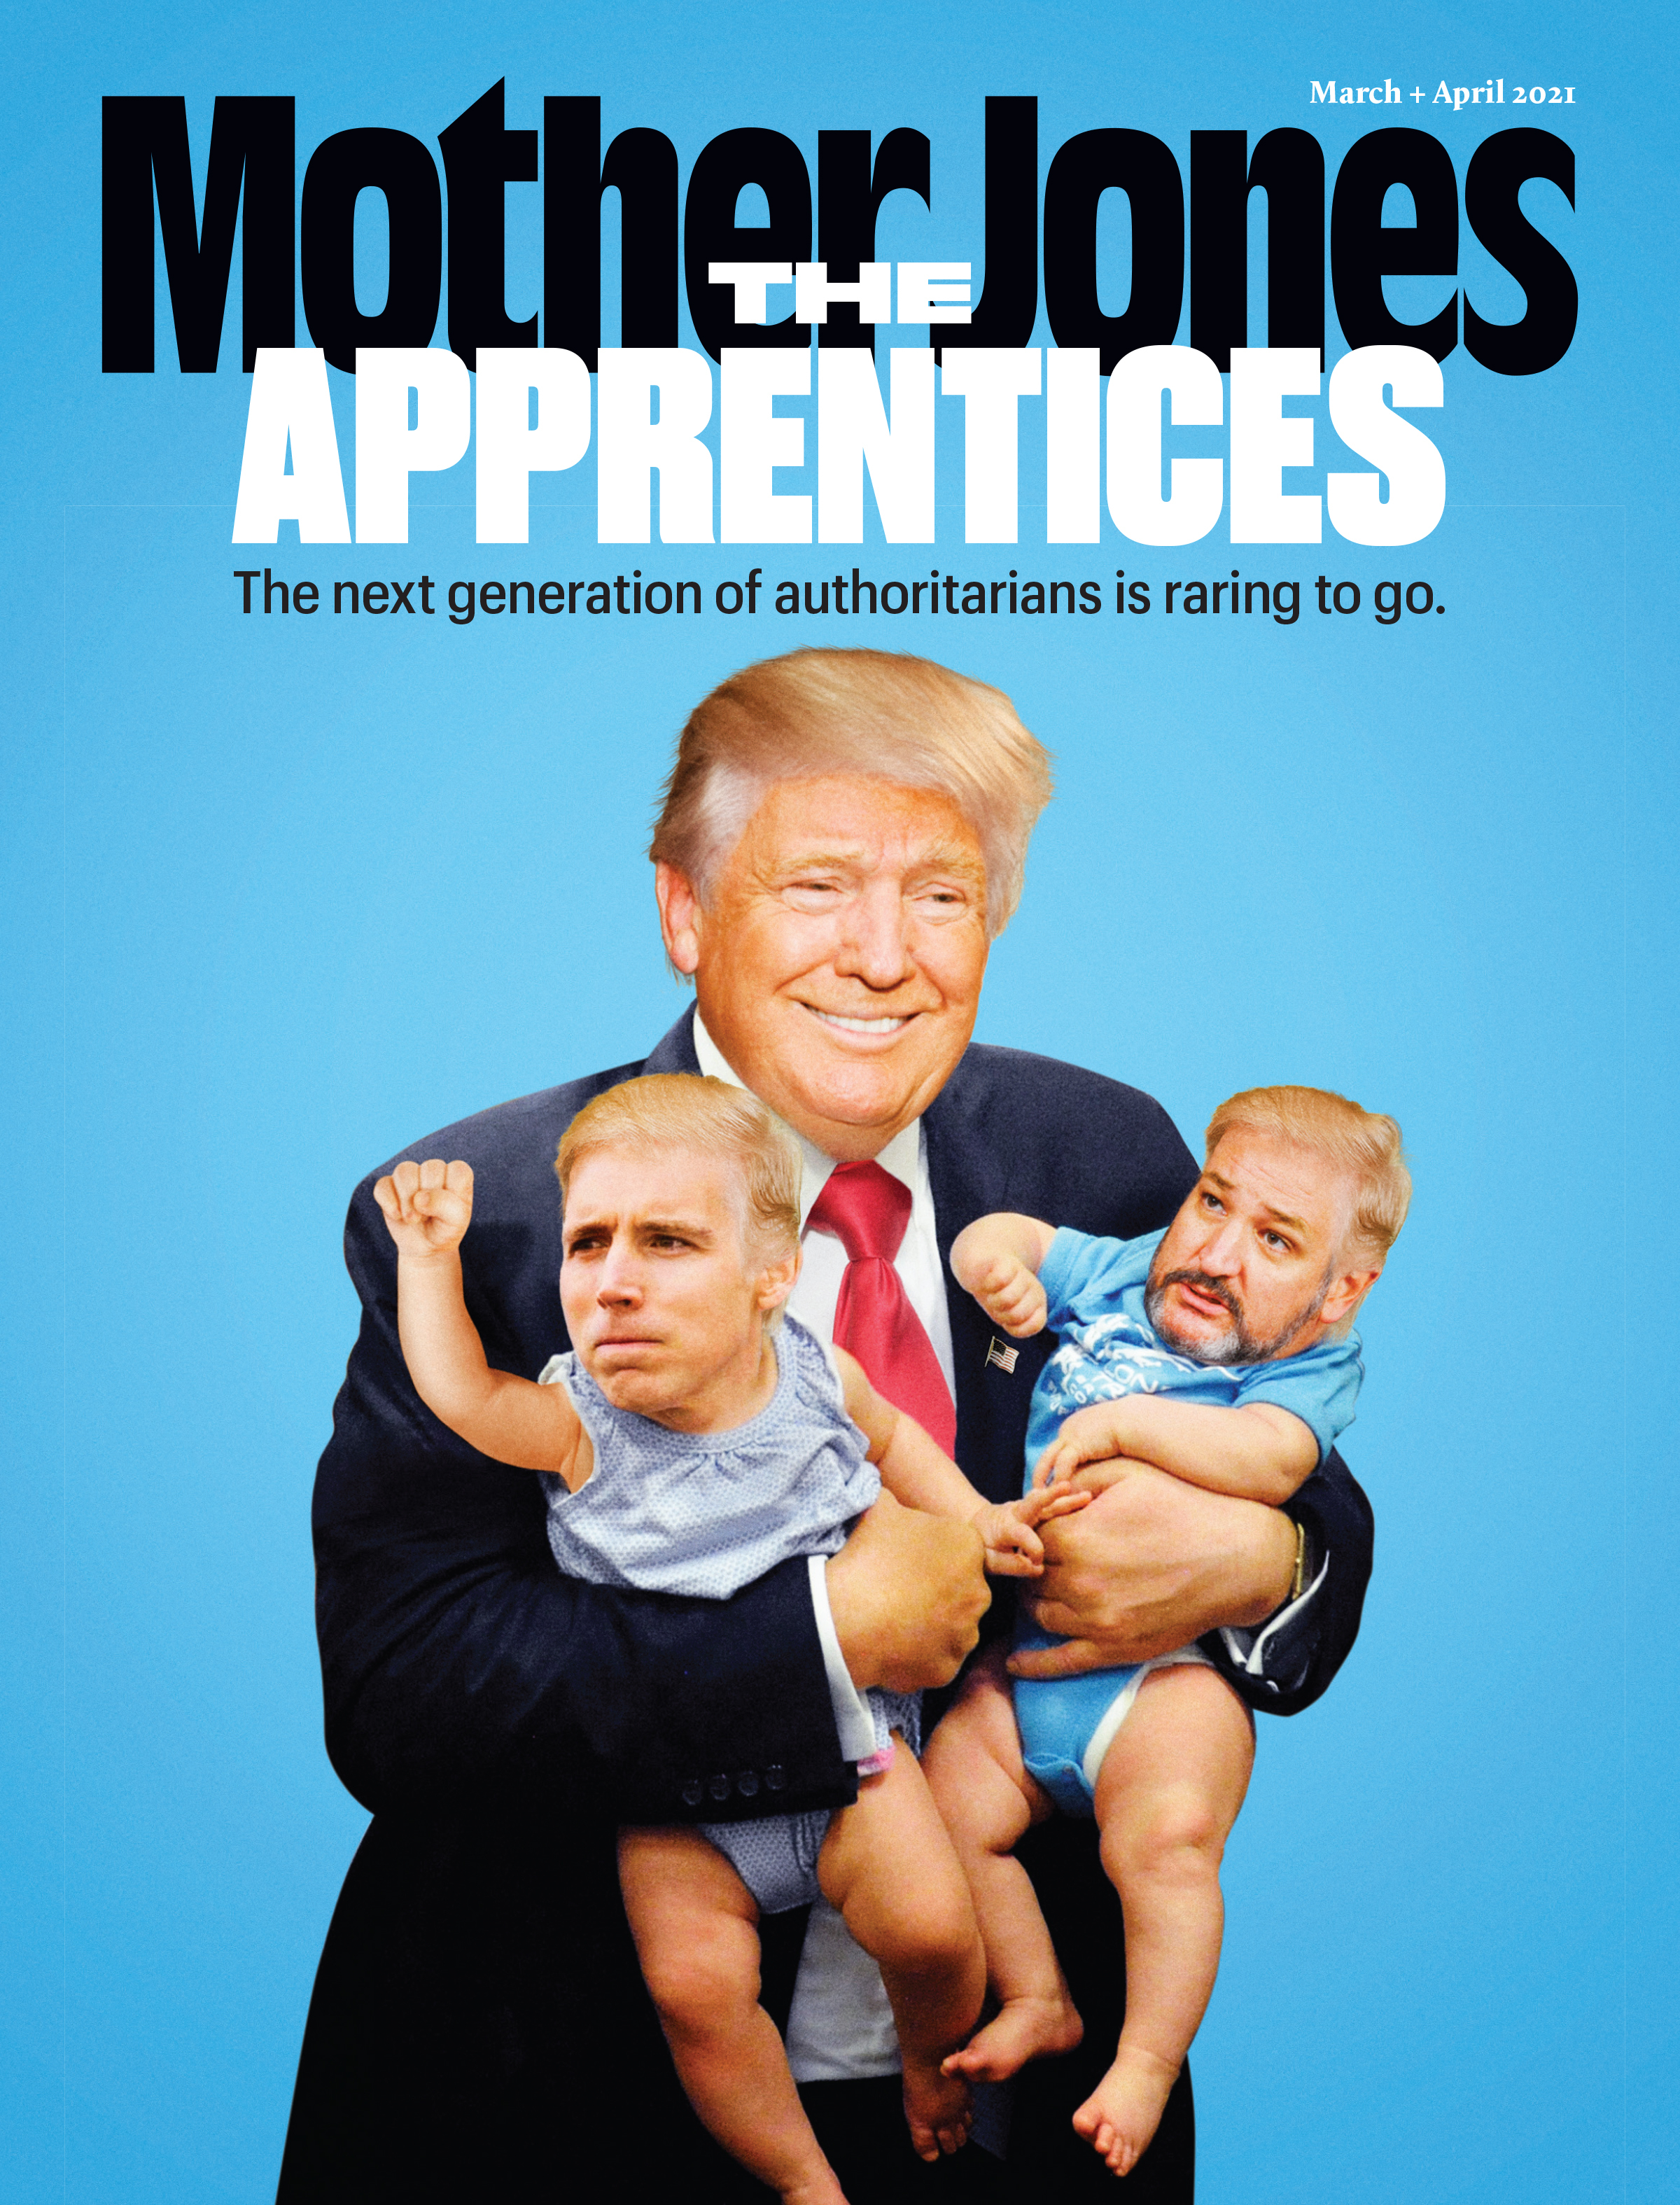 Mother Jones Magazine Cover : November + December 2019